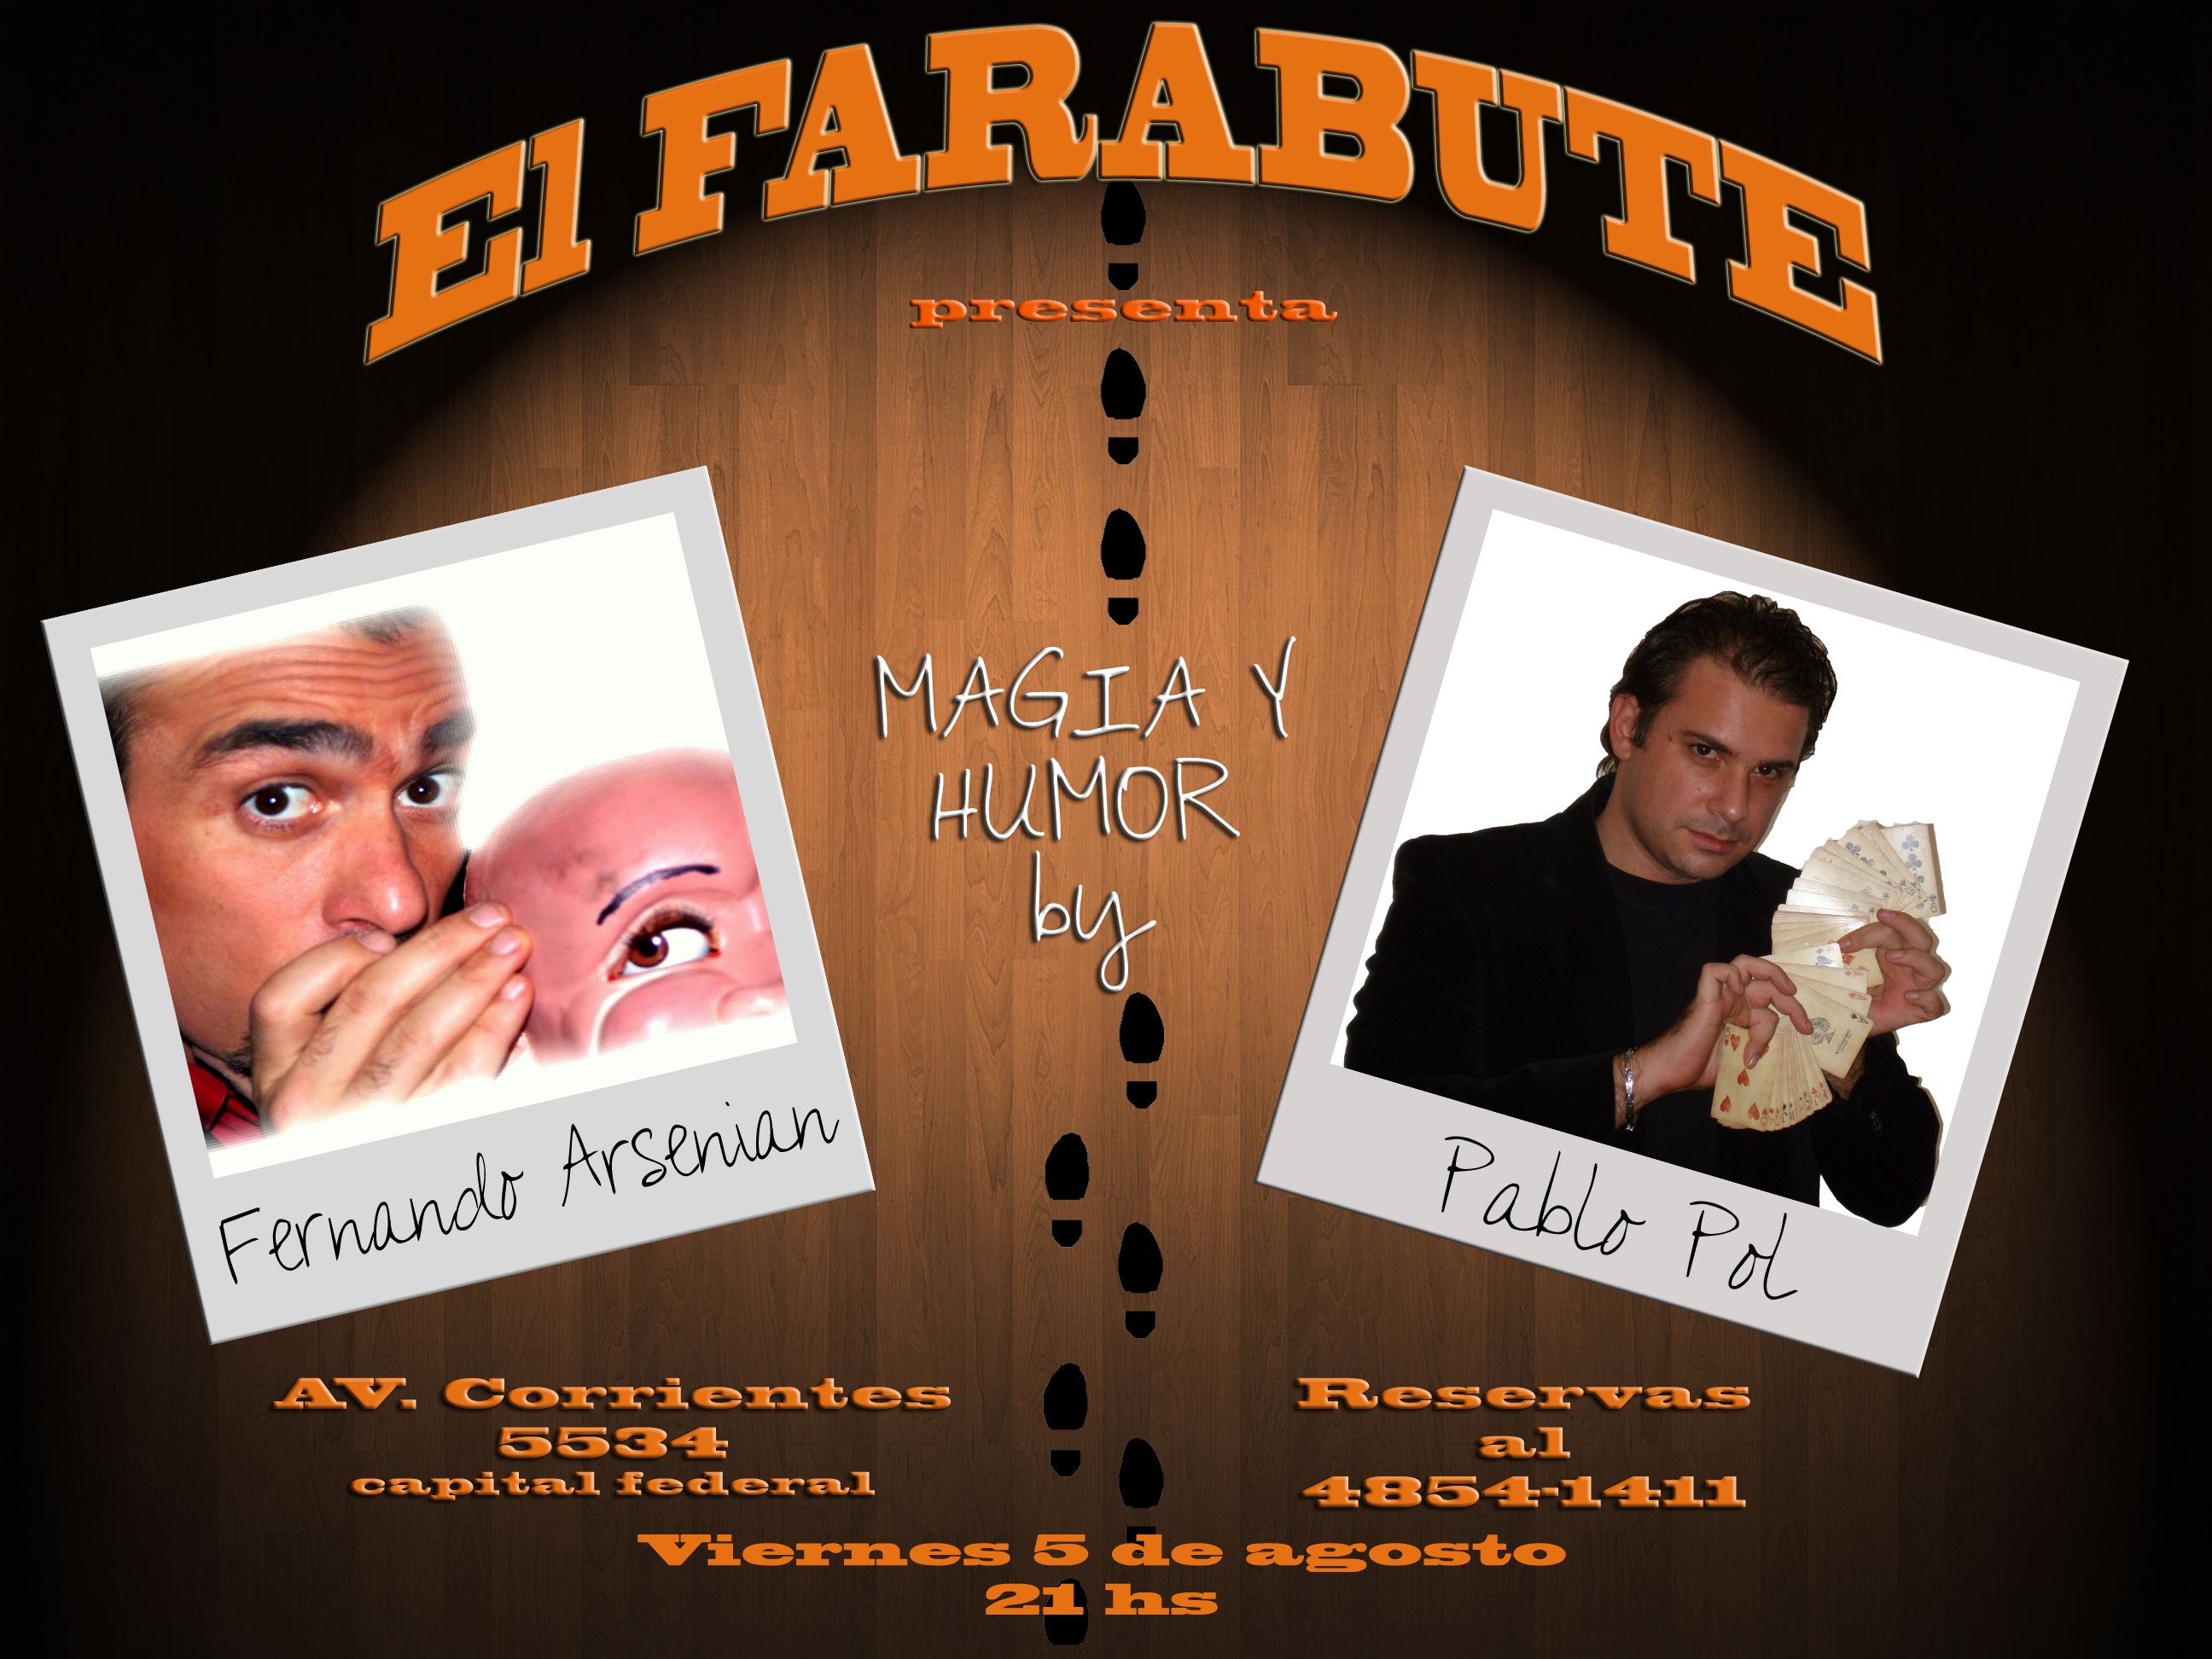 El farabute flyer grande